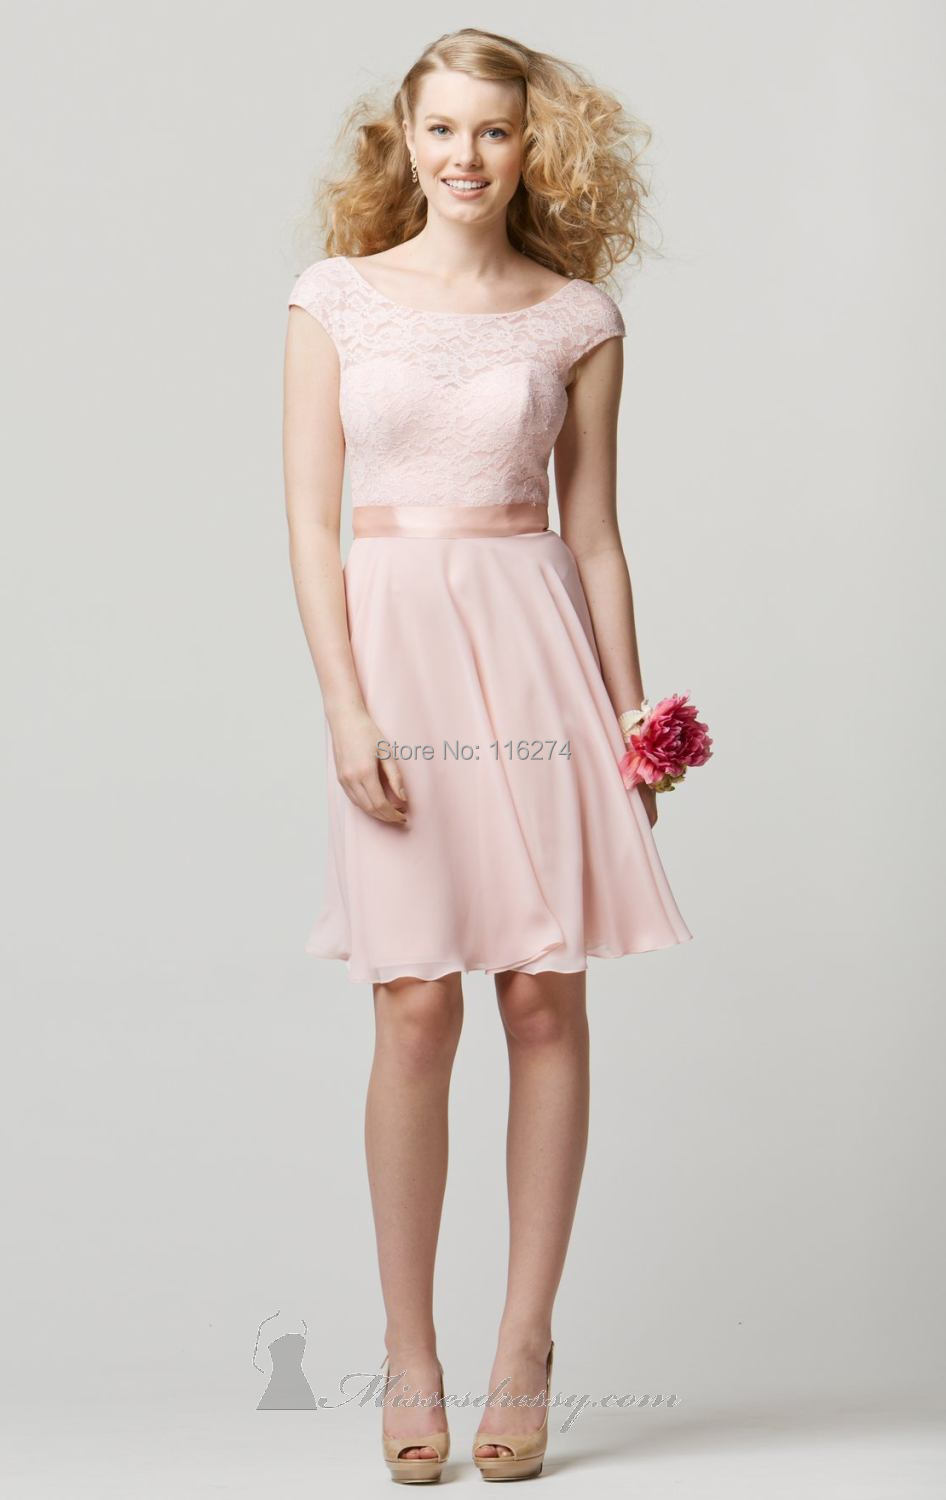 2014 pink short bridesmaid dresses for sale a line chiffon for Wedding dresses for sale cheap